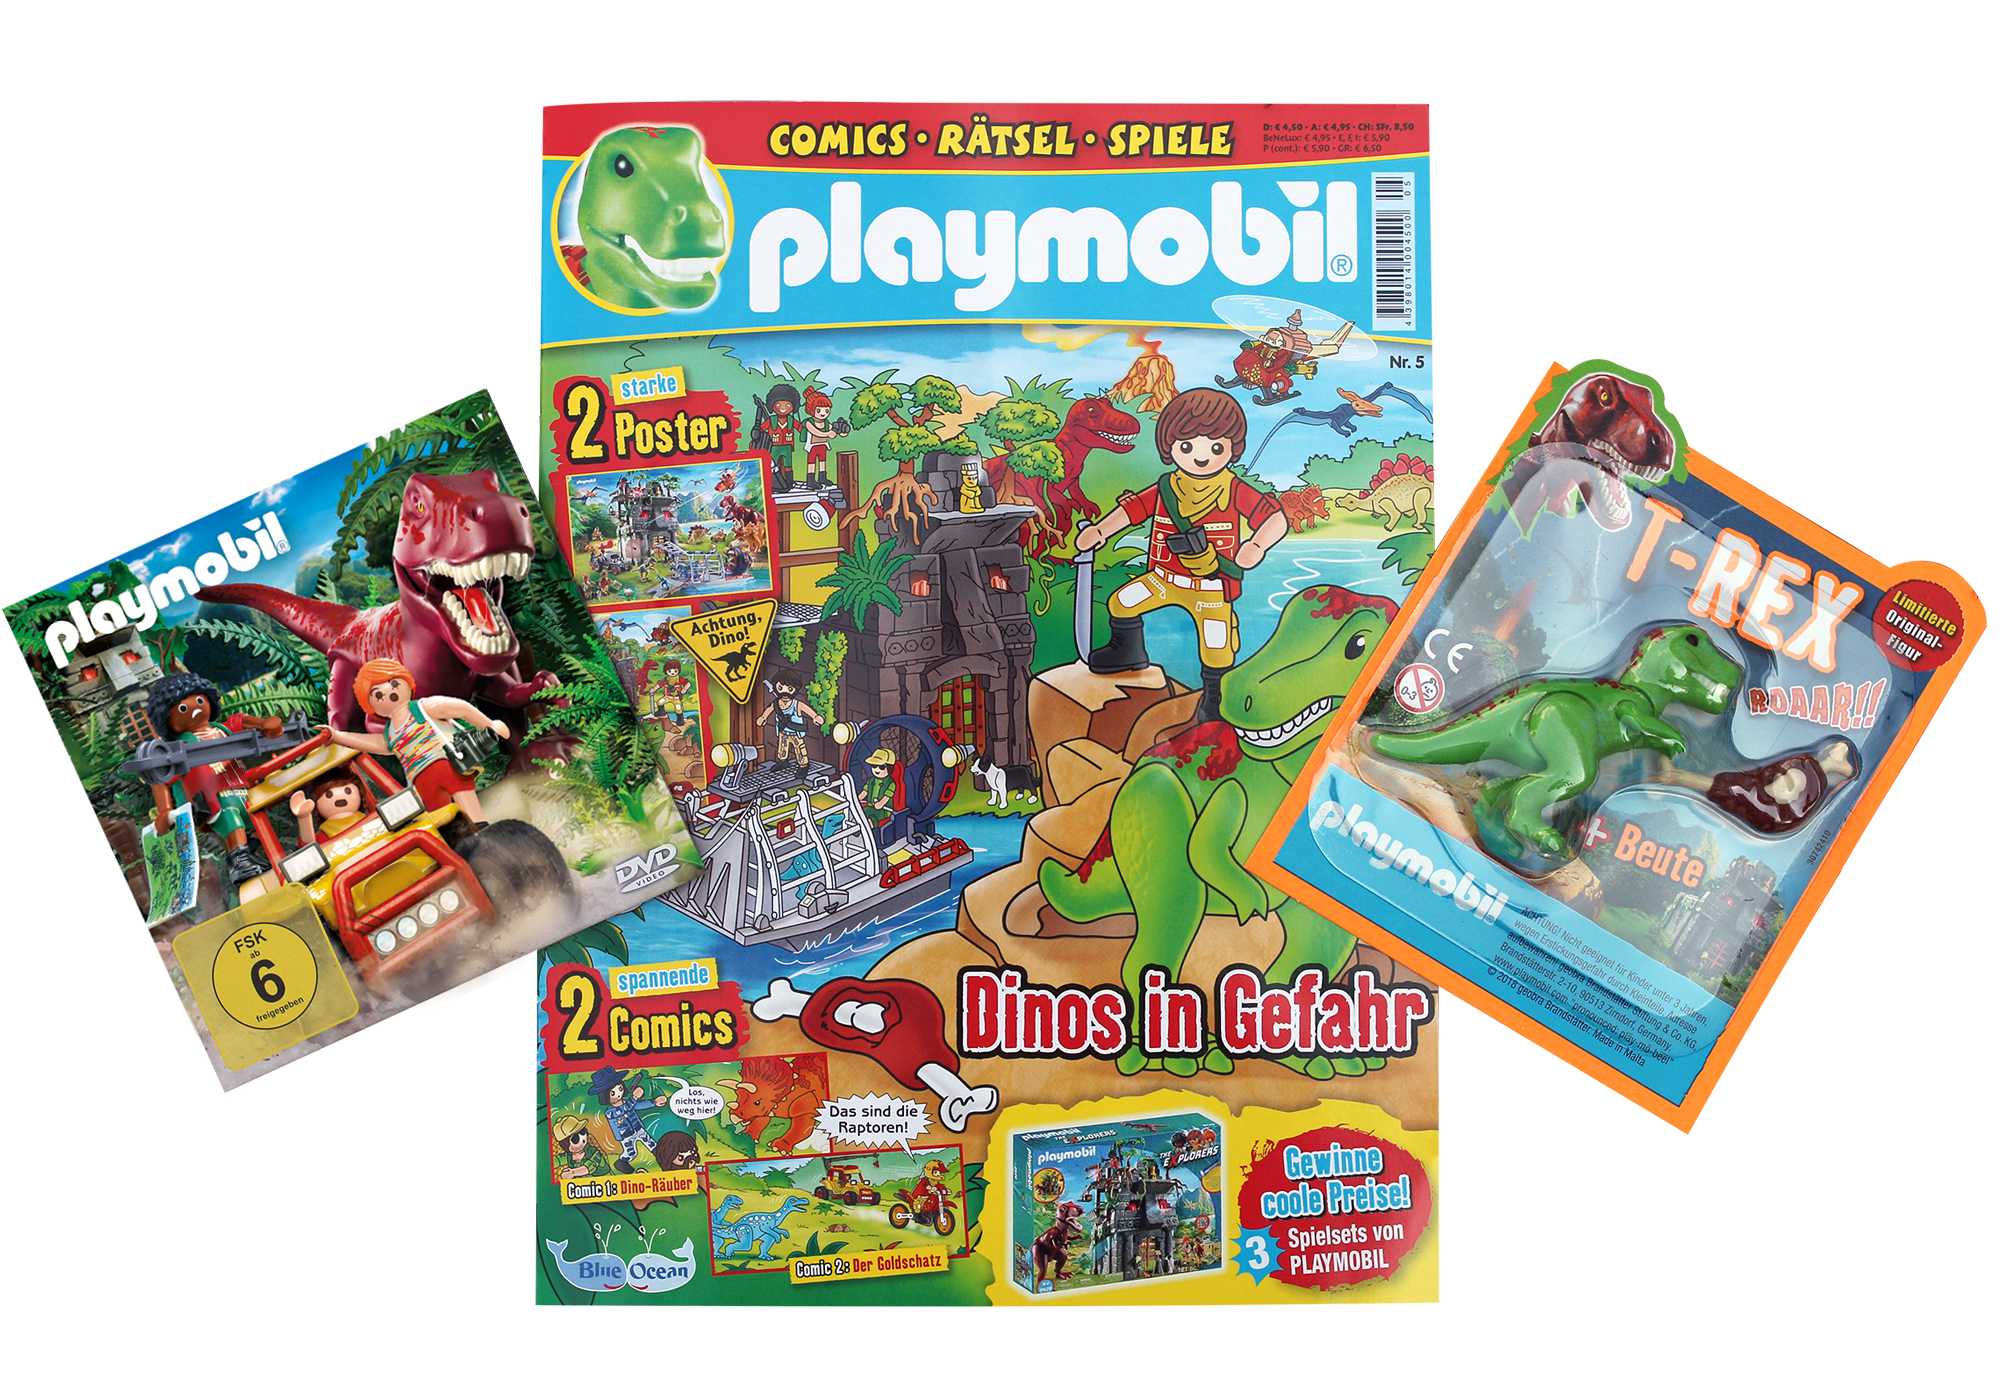 http://media.playmobil.com/i/playmobil/80607_product_detail